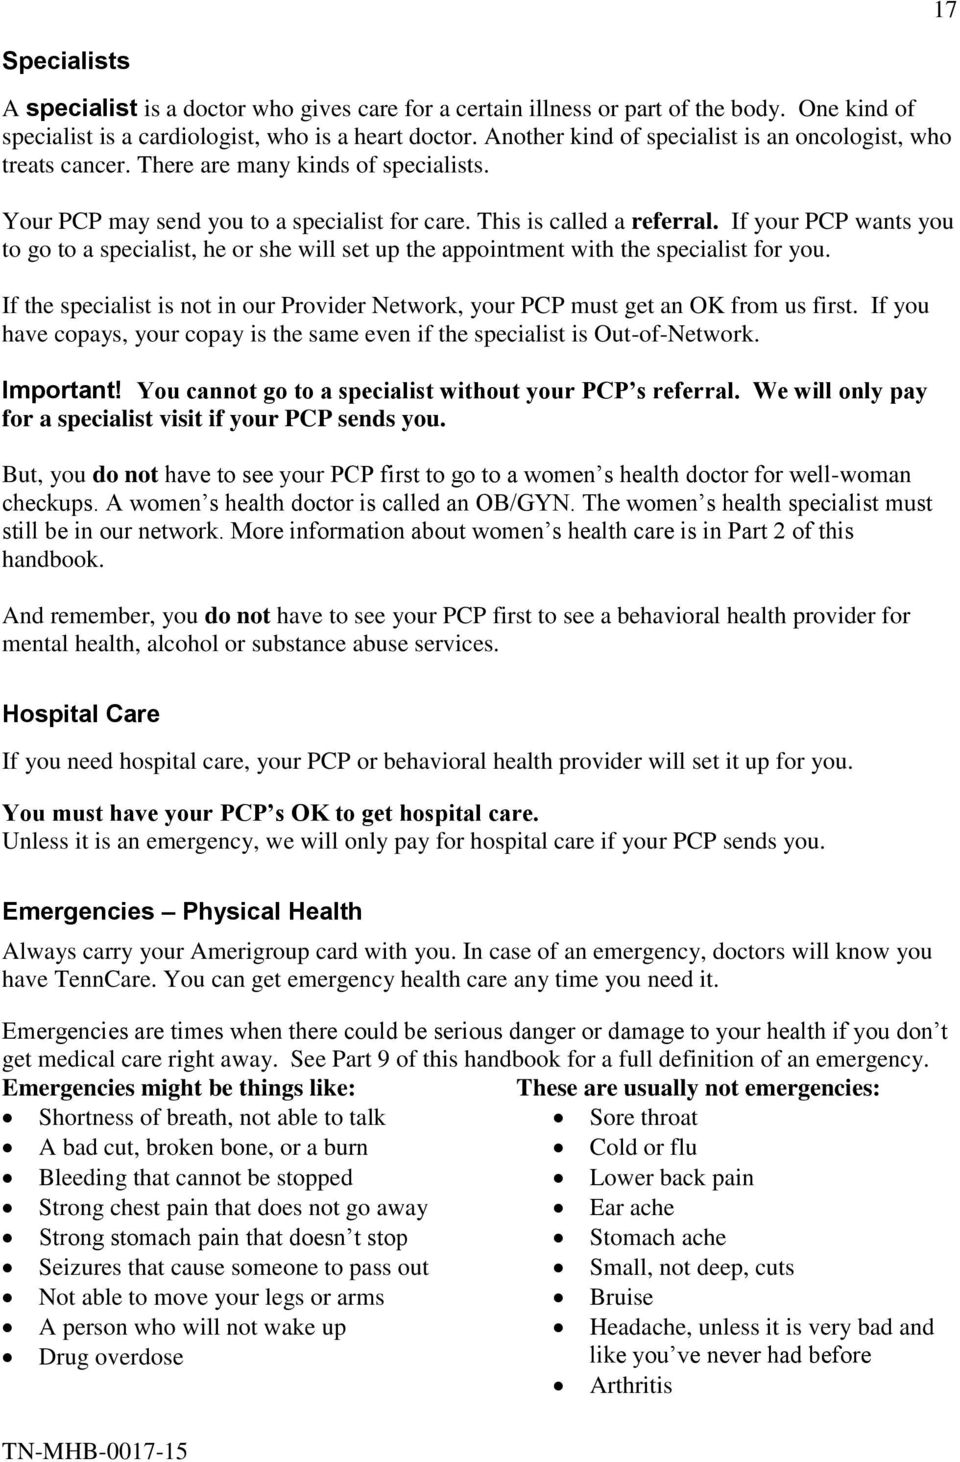 If your PCP wants you to go to a specialist, he or she will set up the appointment with the specialist for you. If the specialist is not in our Provider Network, your PCP must get an OK from us first.